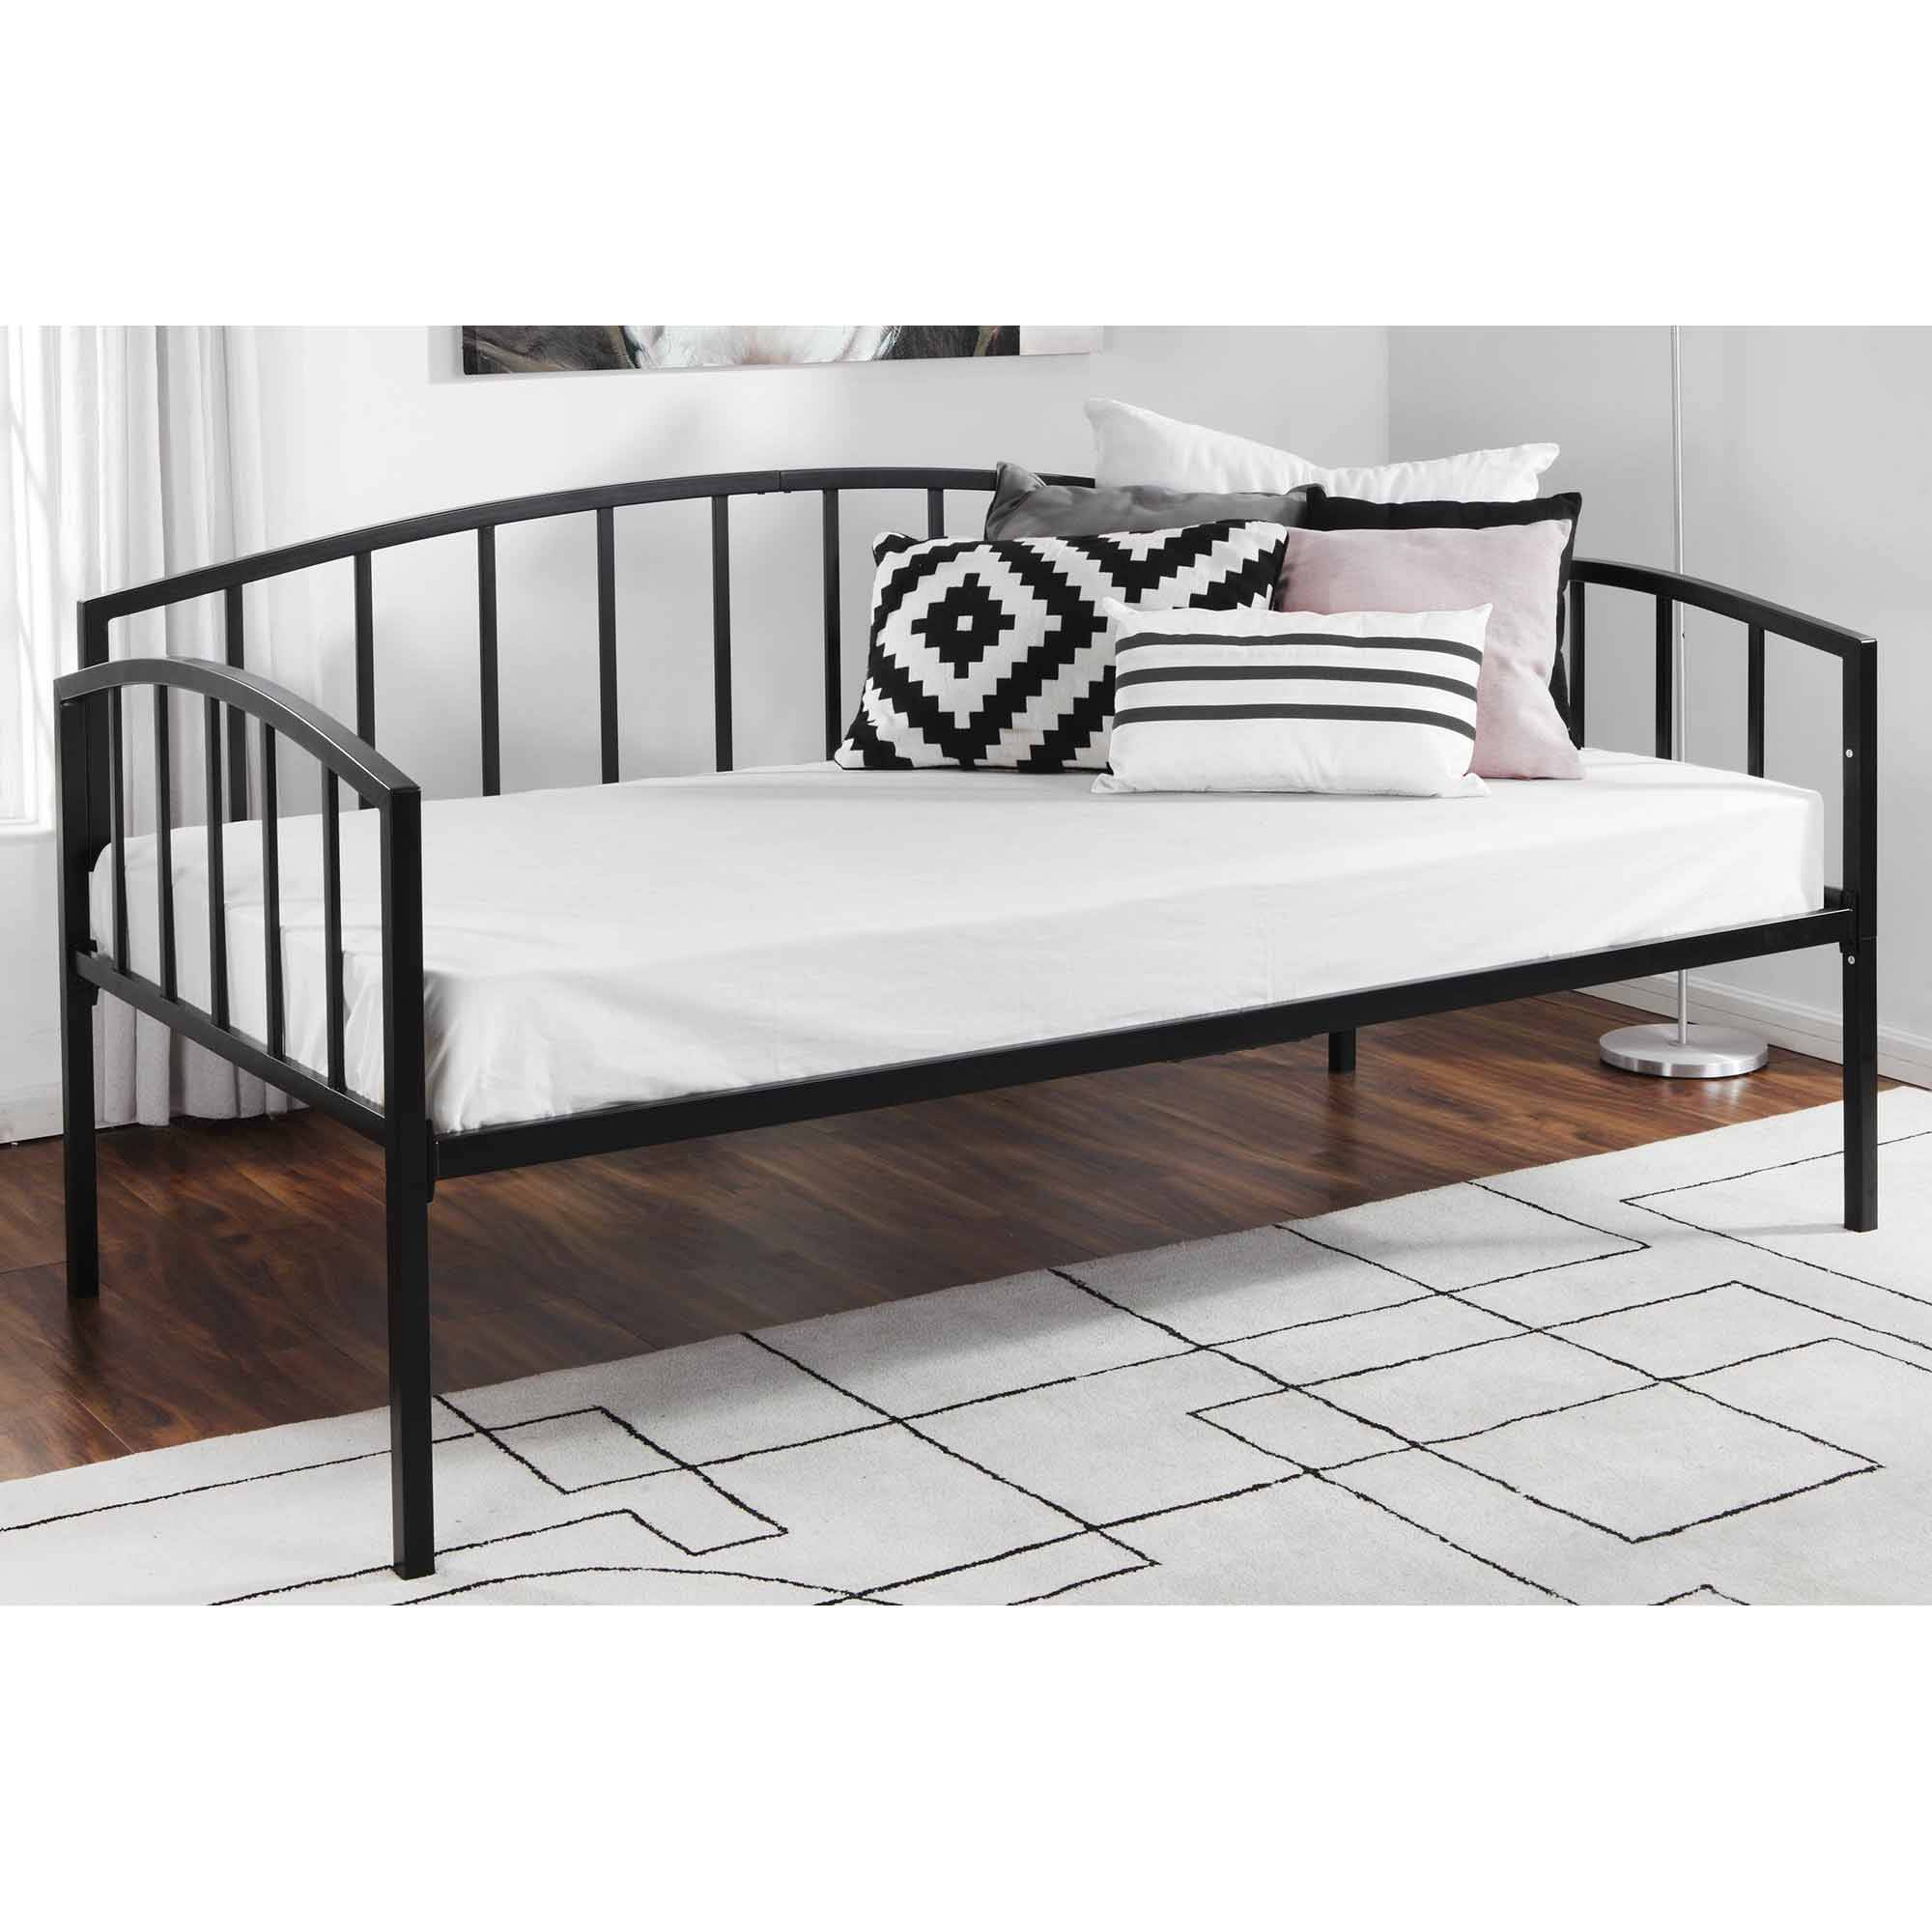 Mainstays Twin Metal Daybed, Black - Walmart.com